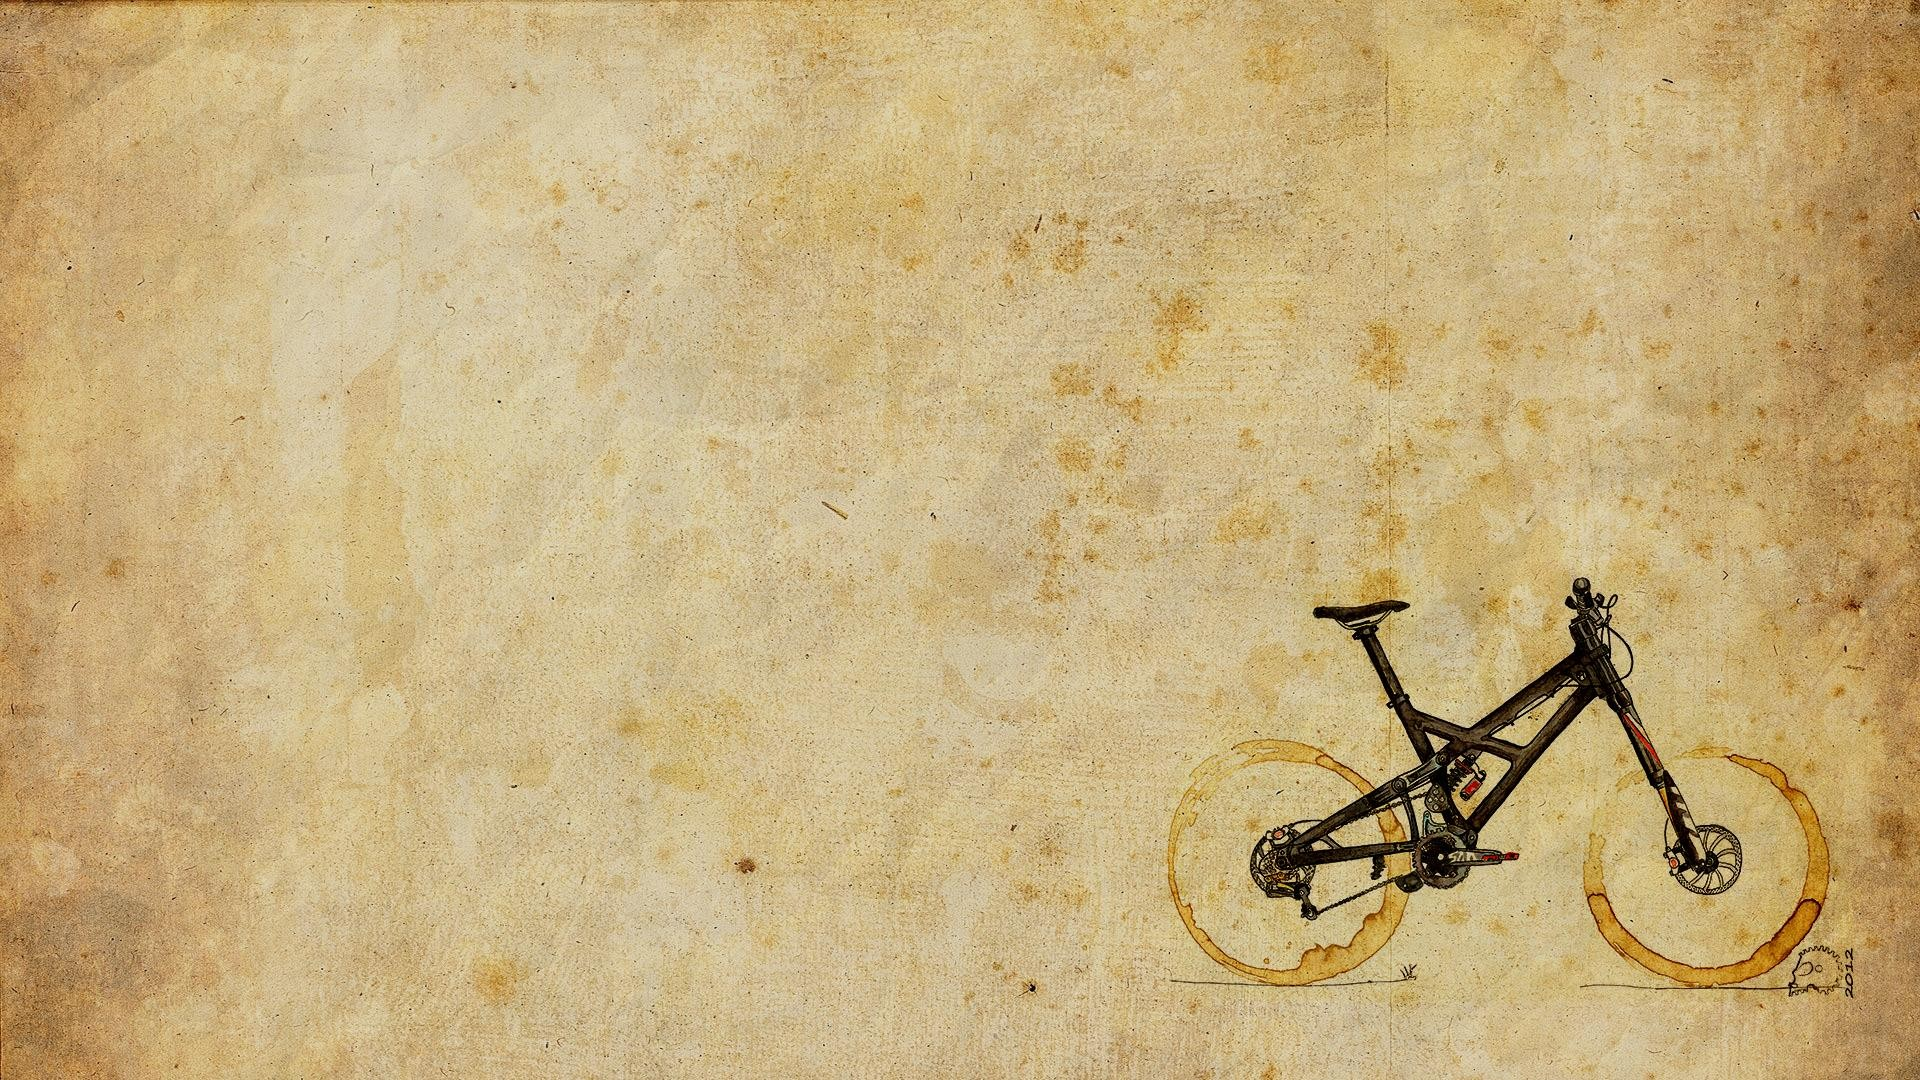 Bicycle Wallpapers 30 1920 X 1080